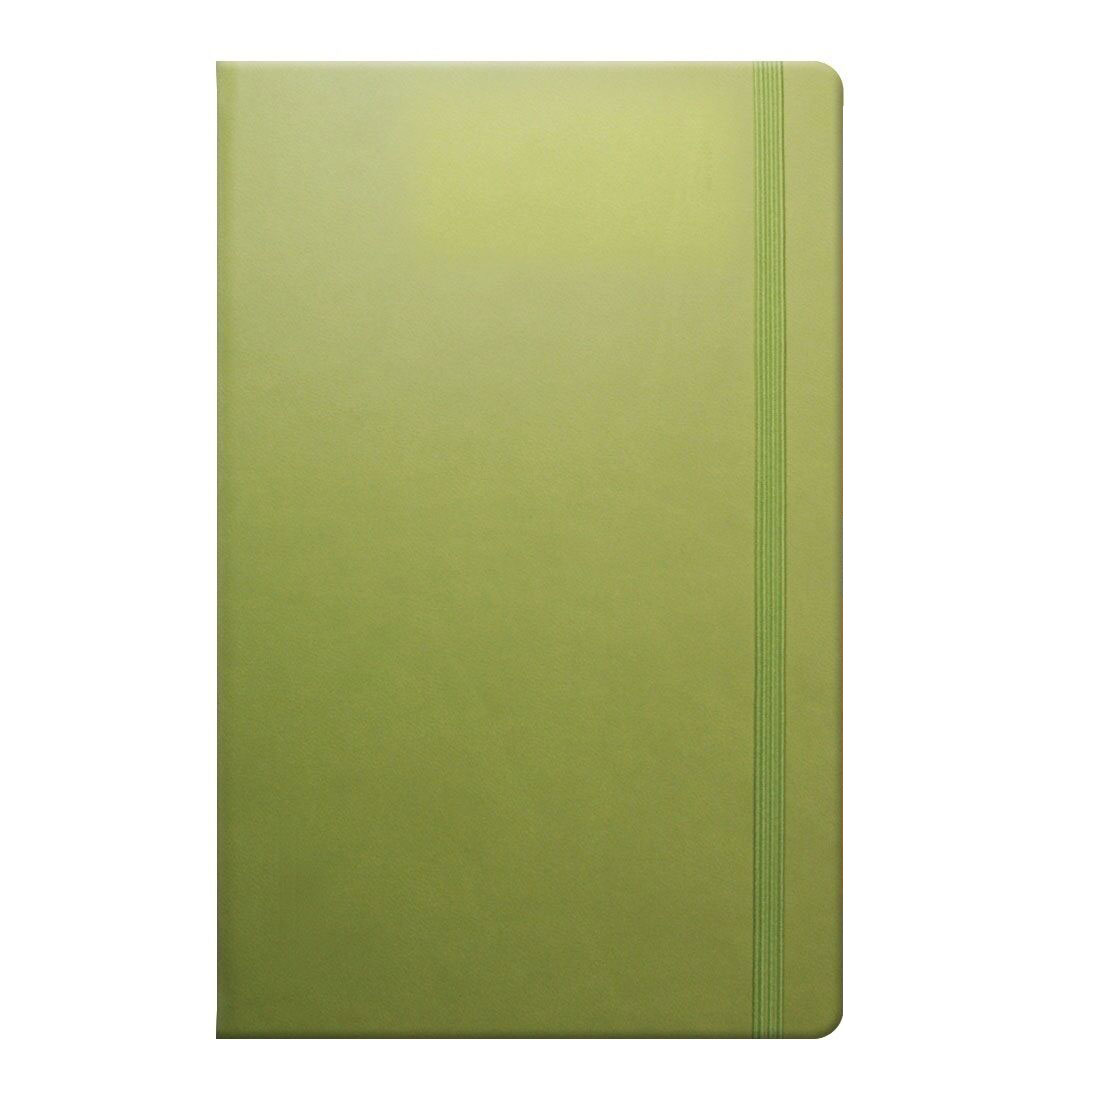 Castelli Notebook Range - Castelli Notebook - Green